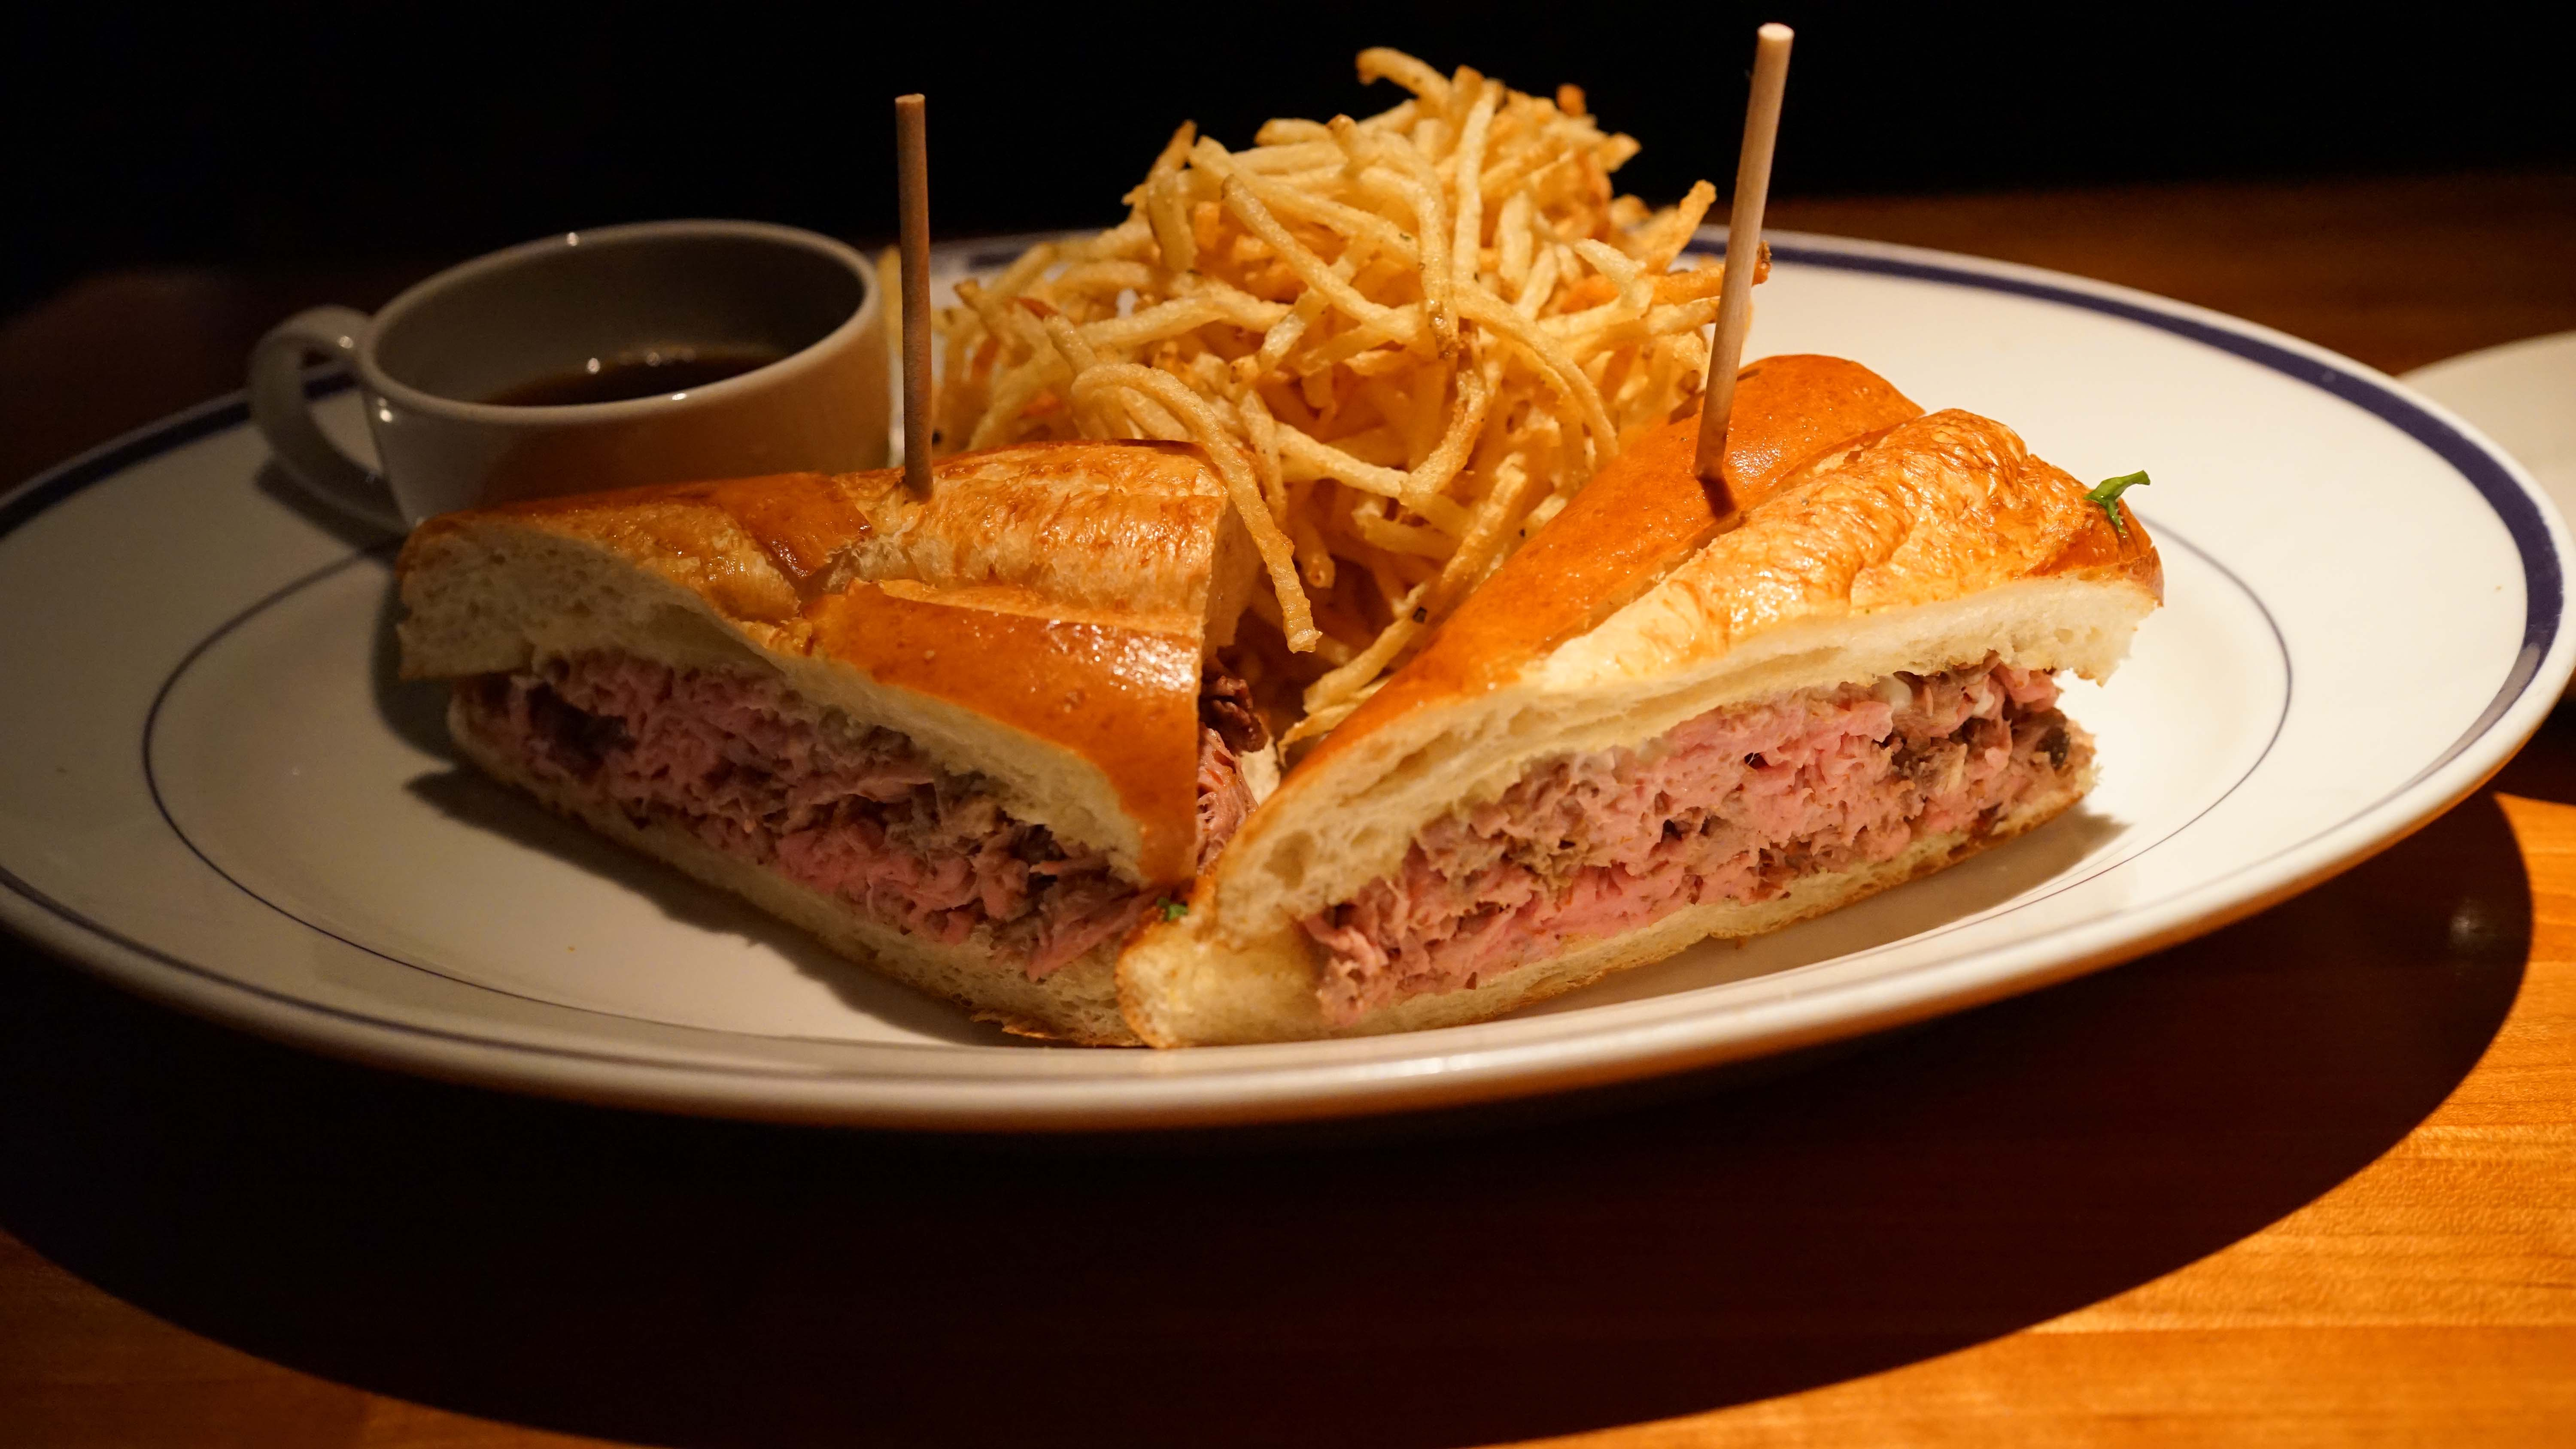 Hillsteon French dip